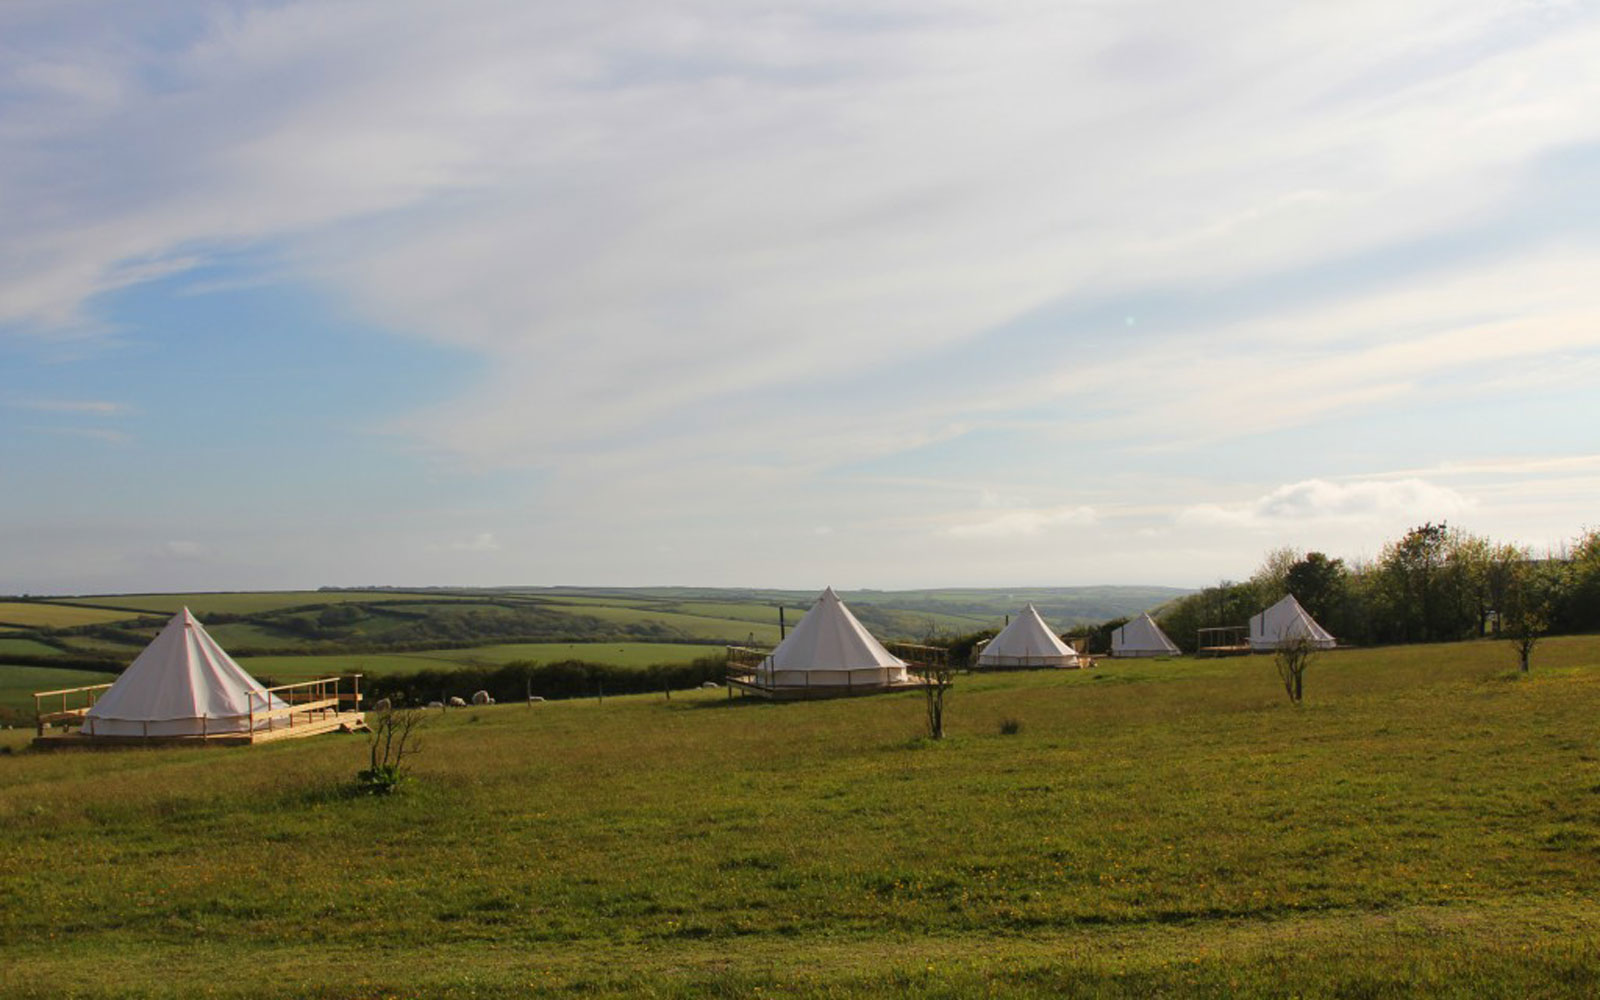 Things to Do in England: Sleep in a Yurt in Cornwall